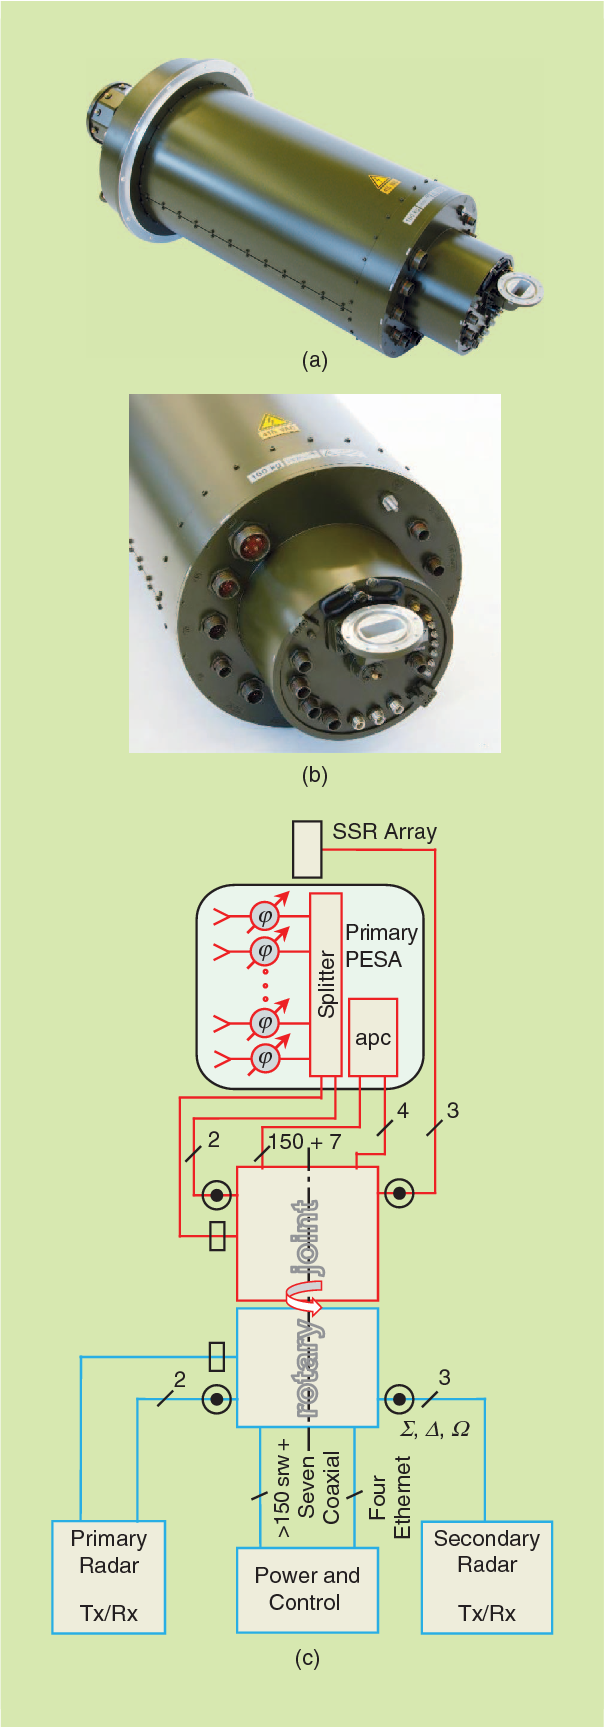 Refining Radar Architectures: Multichannel Rotary Joints for